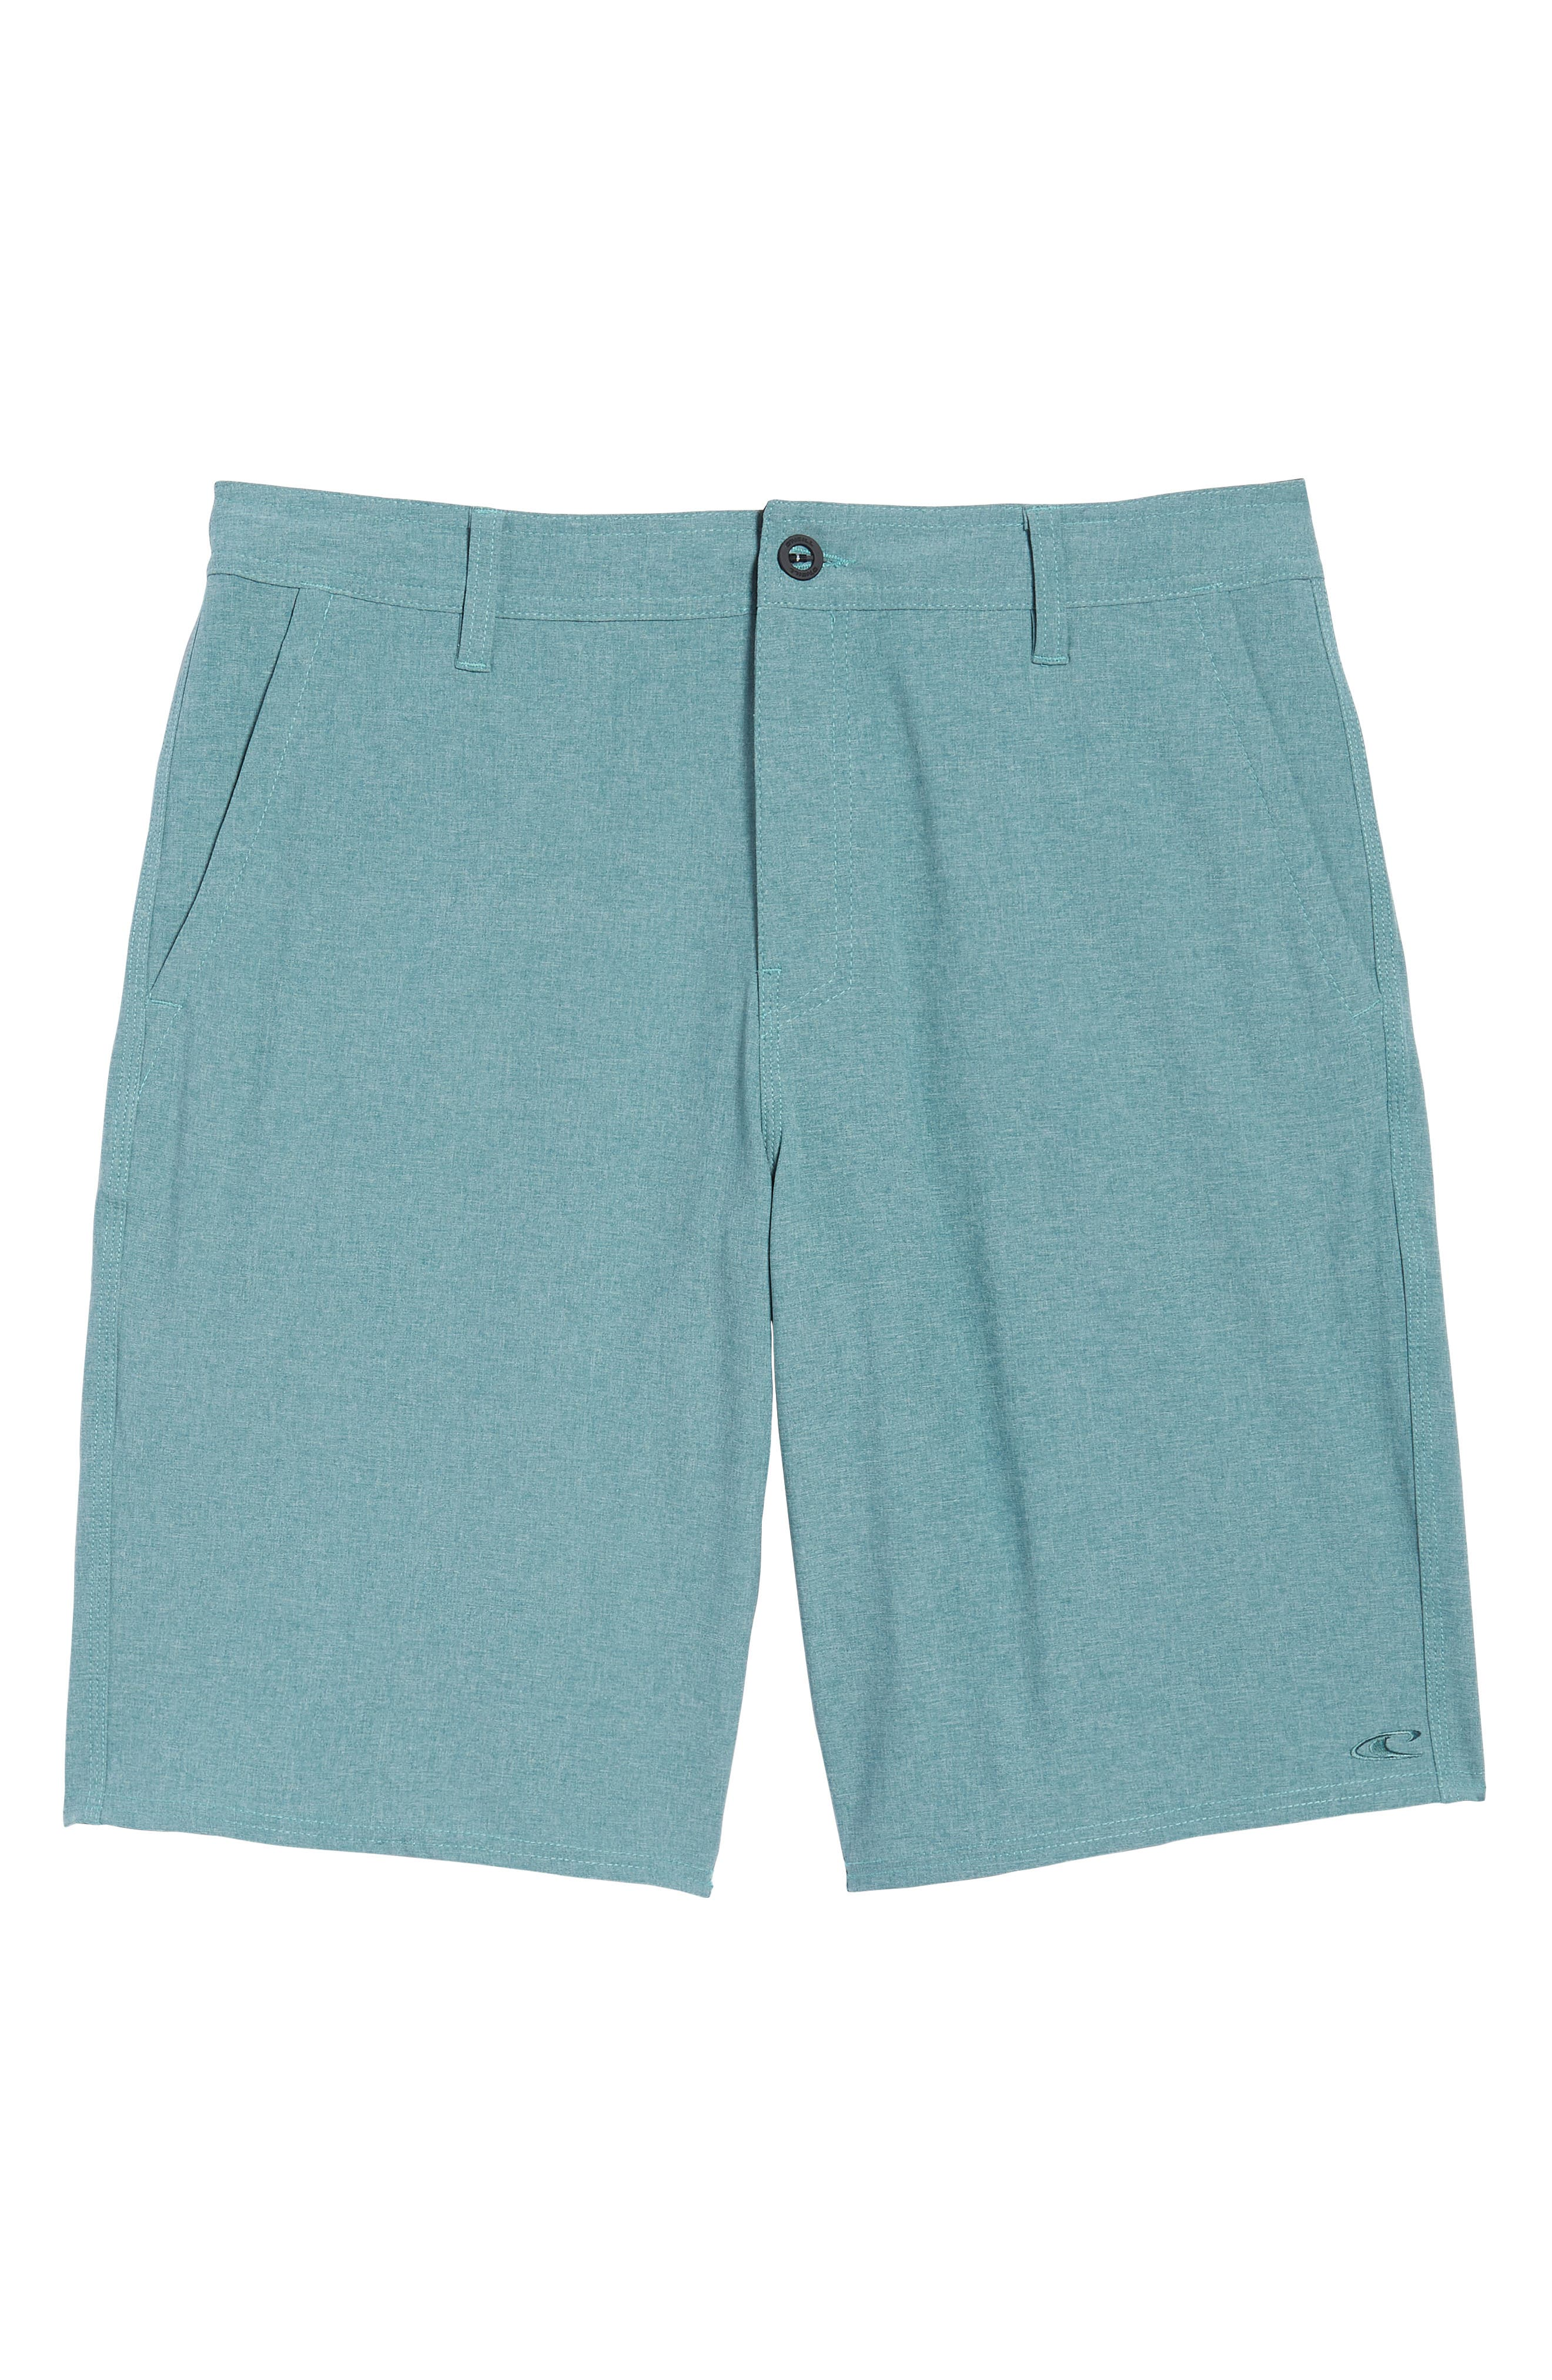 Loaded Heather Hybrid Shorts,                             Alternate thumbnail 6, color,                             300